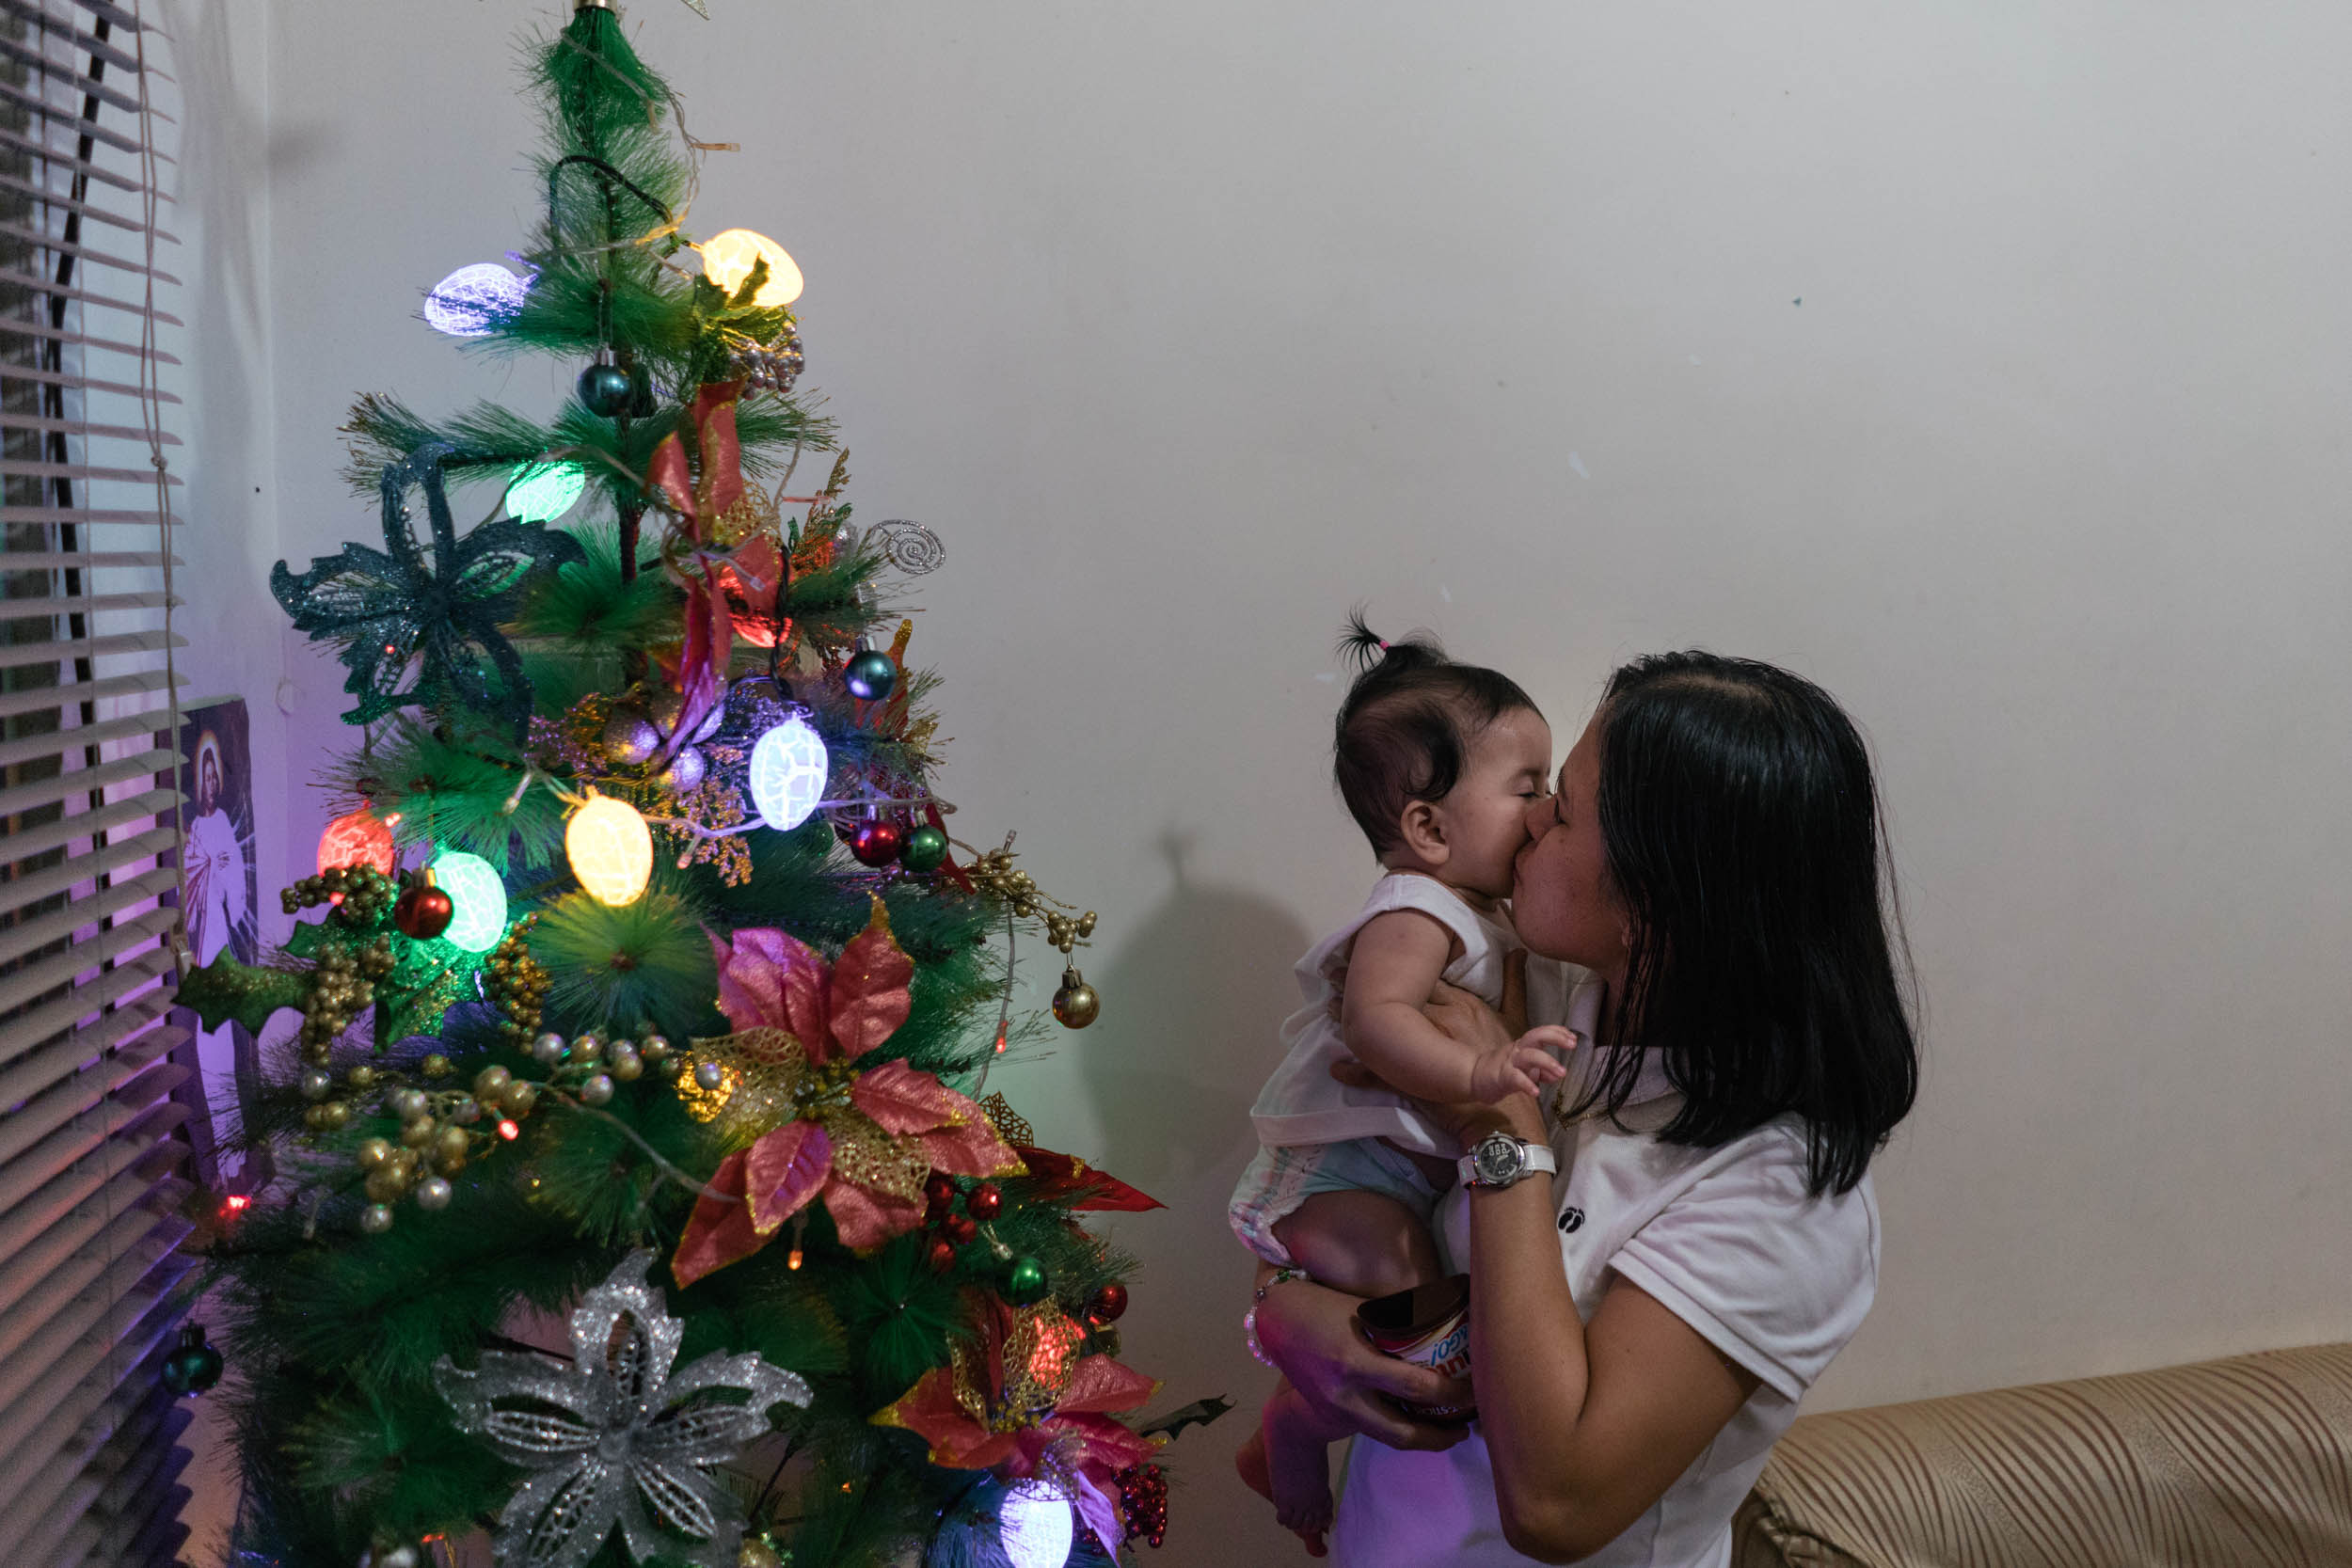 Sheila, a domestic worker from Hong Kong, arrives in her home in Cavite, South of Manila, where her relatives greet her.